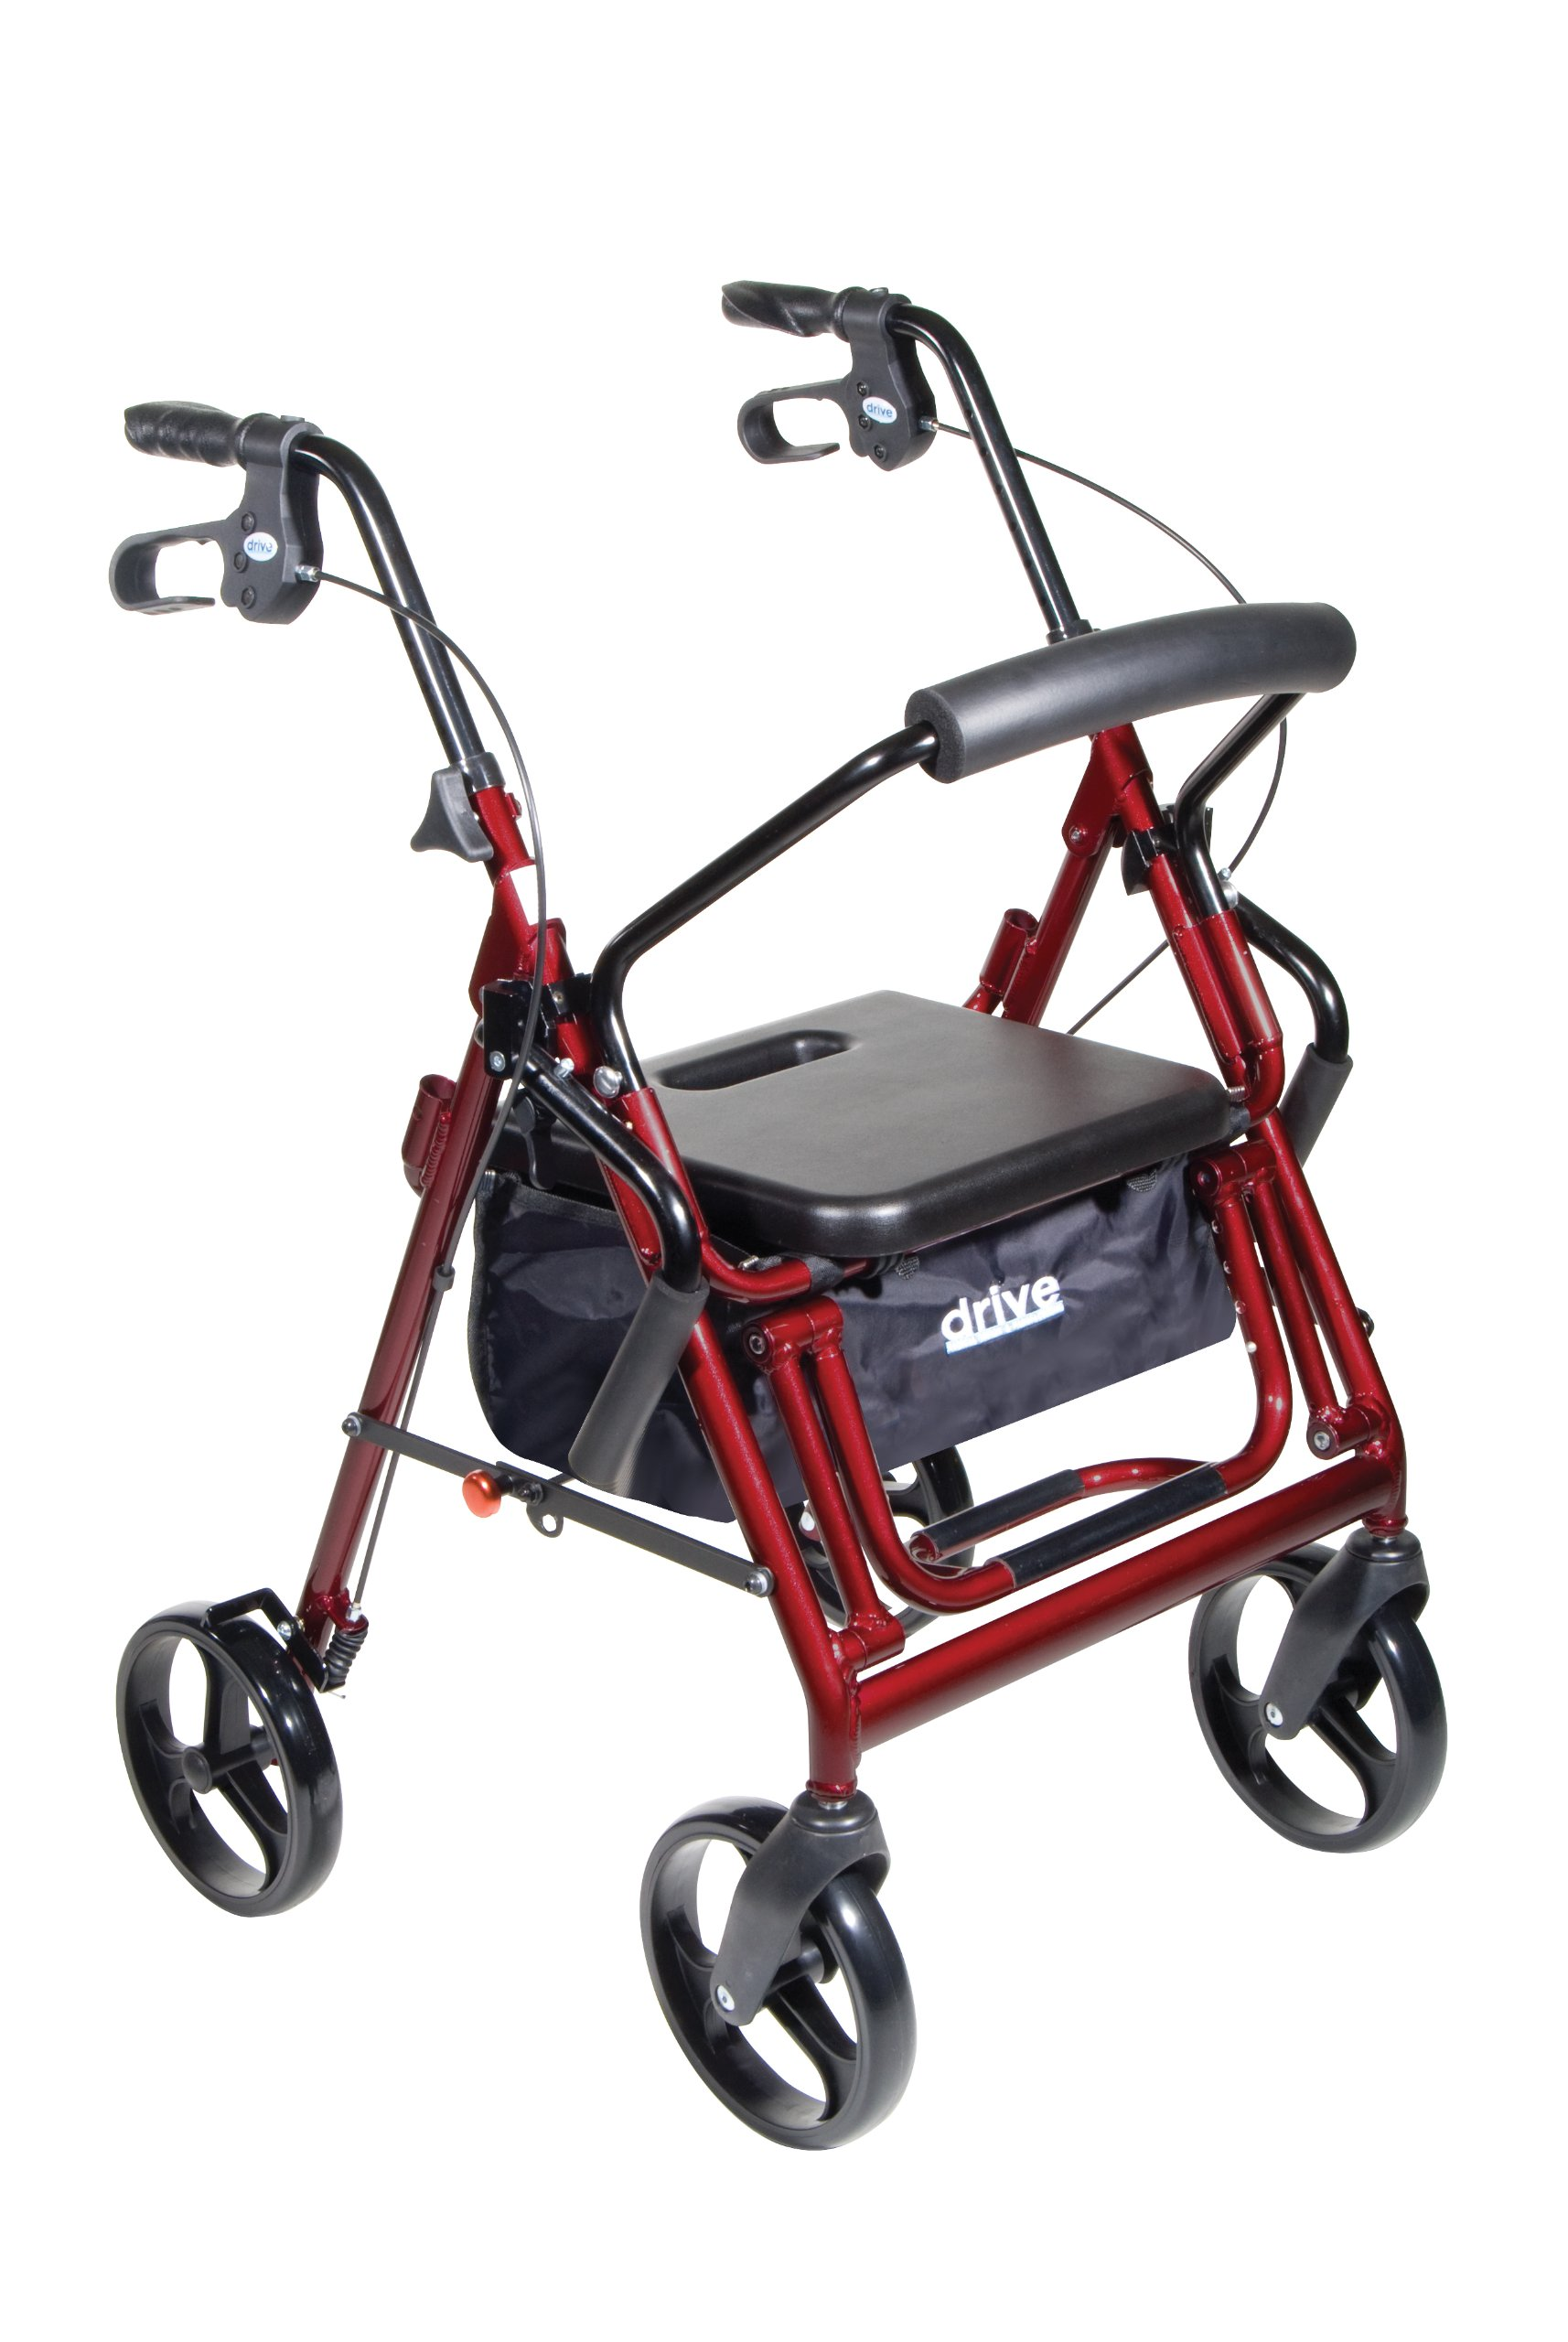 Drive Medical Duet Transport Wheelchair Rollator Walker, Burgundy by Drive Medical